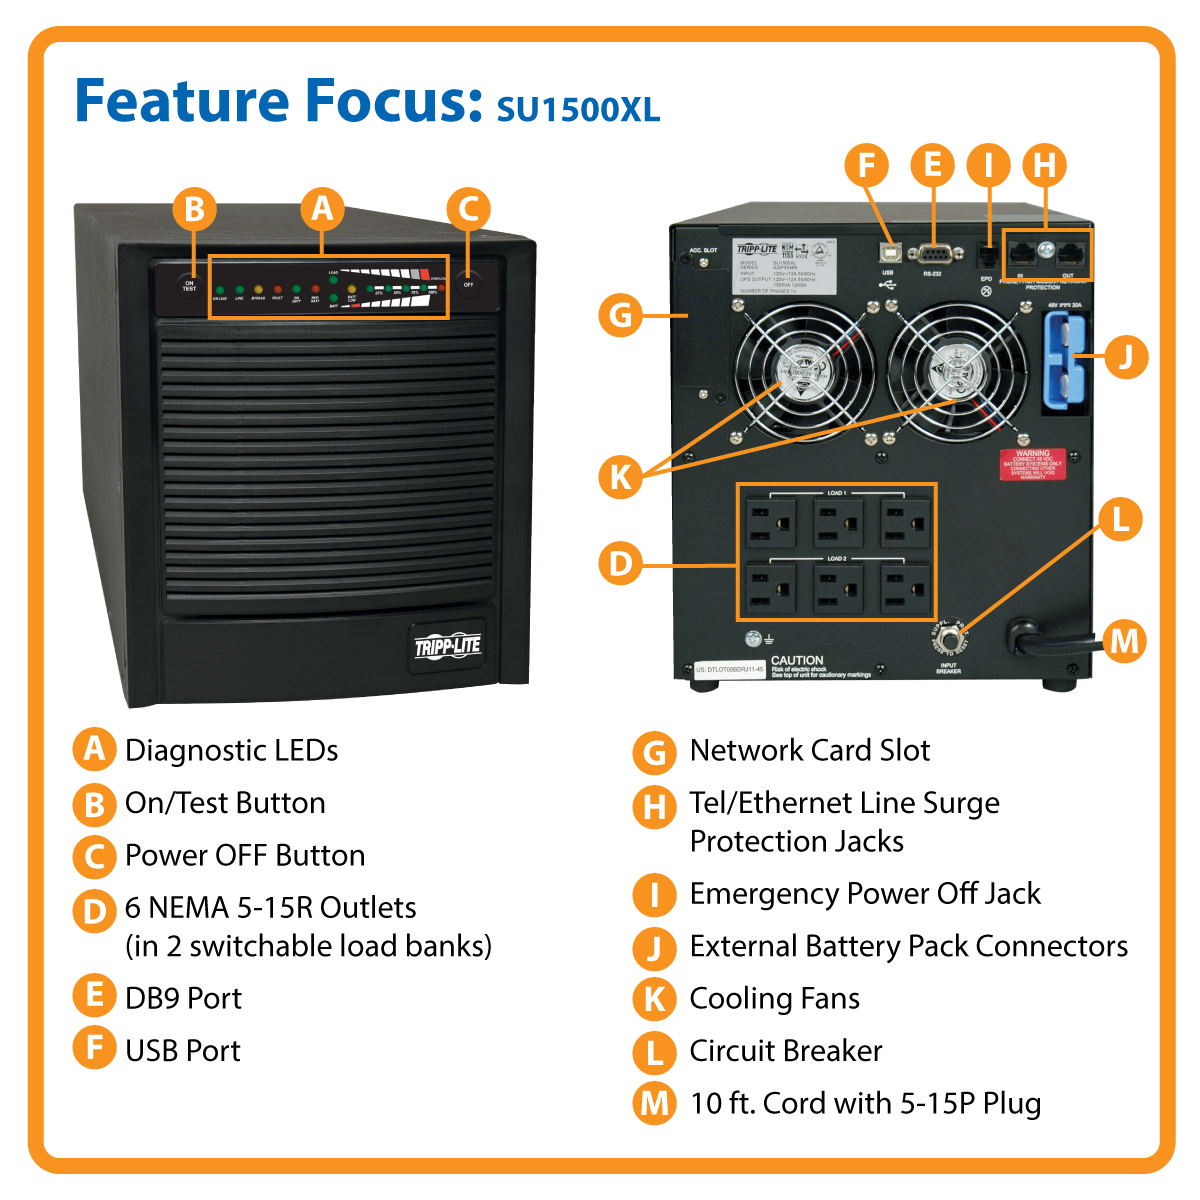 slide 1 of 6,show larger image, su1500xl smartonline® double-conversion sine wave tower ups with expandable runtime and network slot